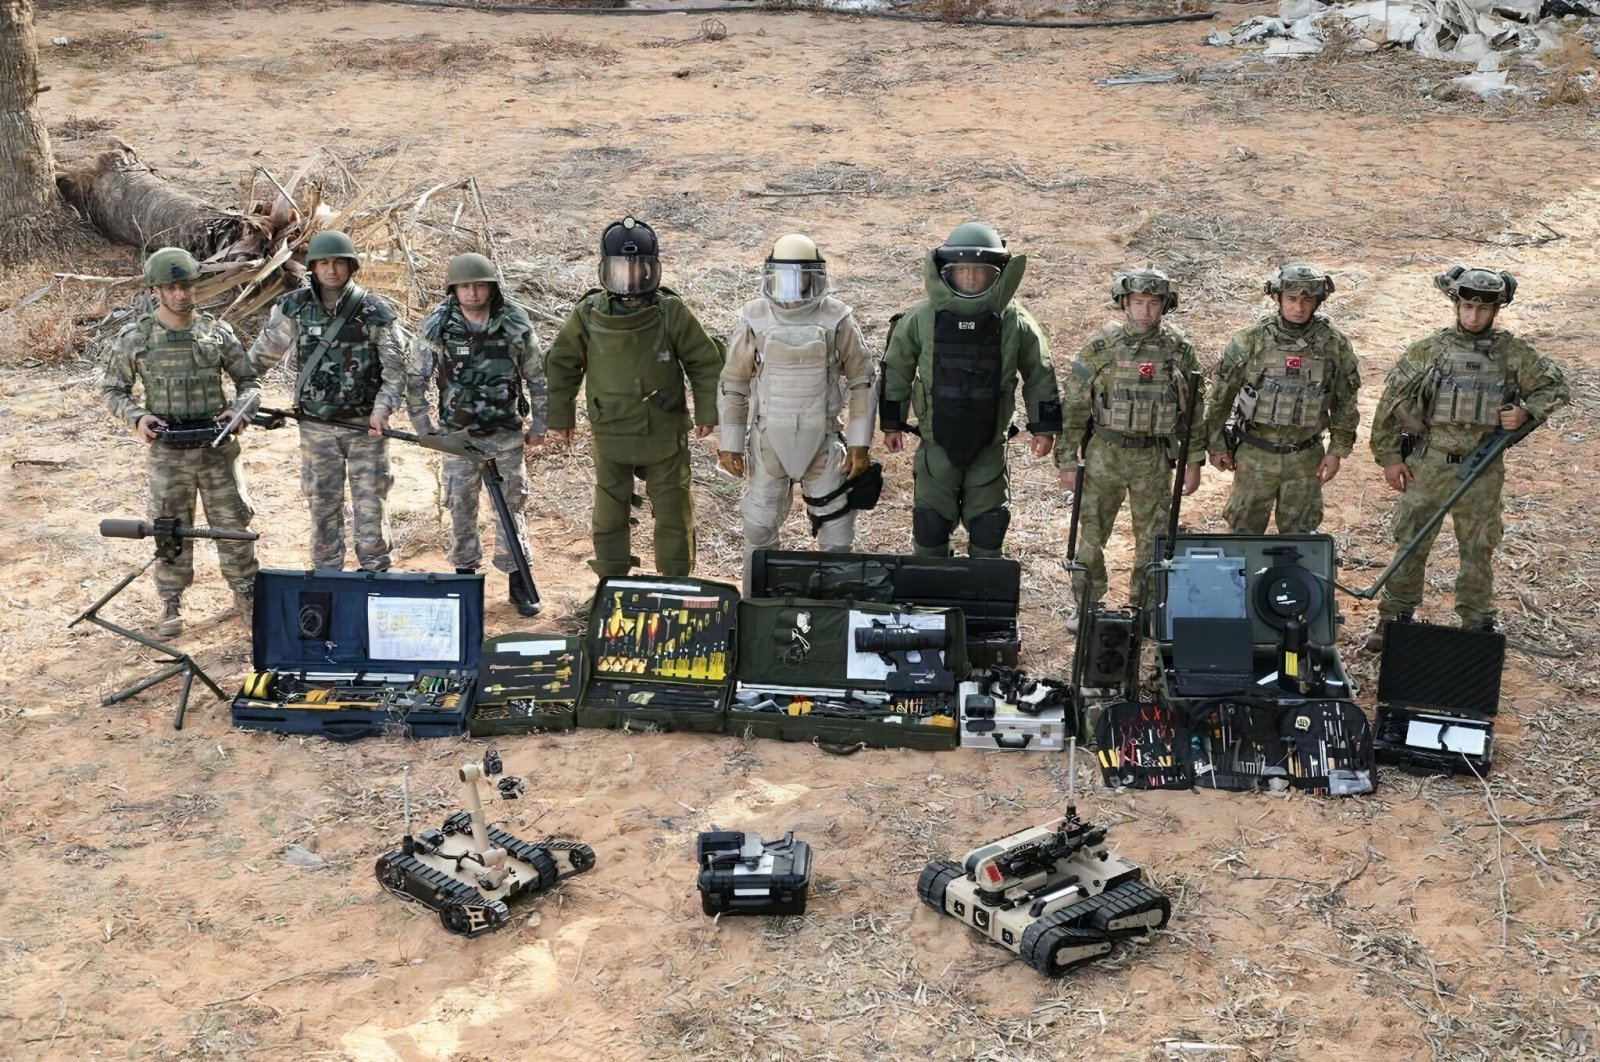 The Turkish military's demining crews pose for a group photo in Libya, June 25, 2020. (Defense Ministry Handout Photo)